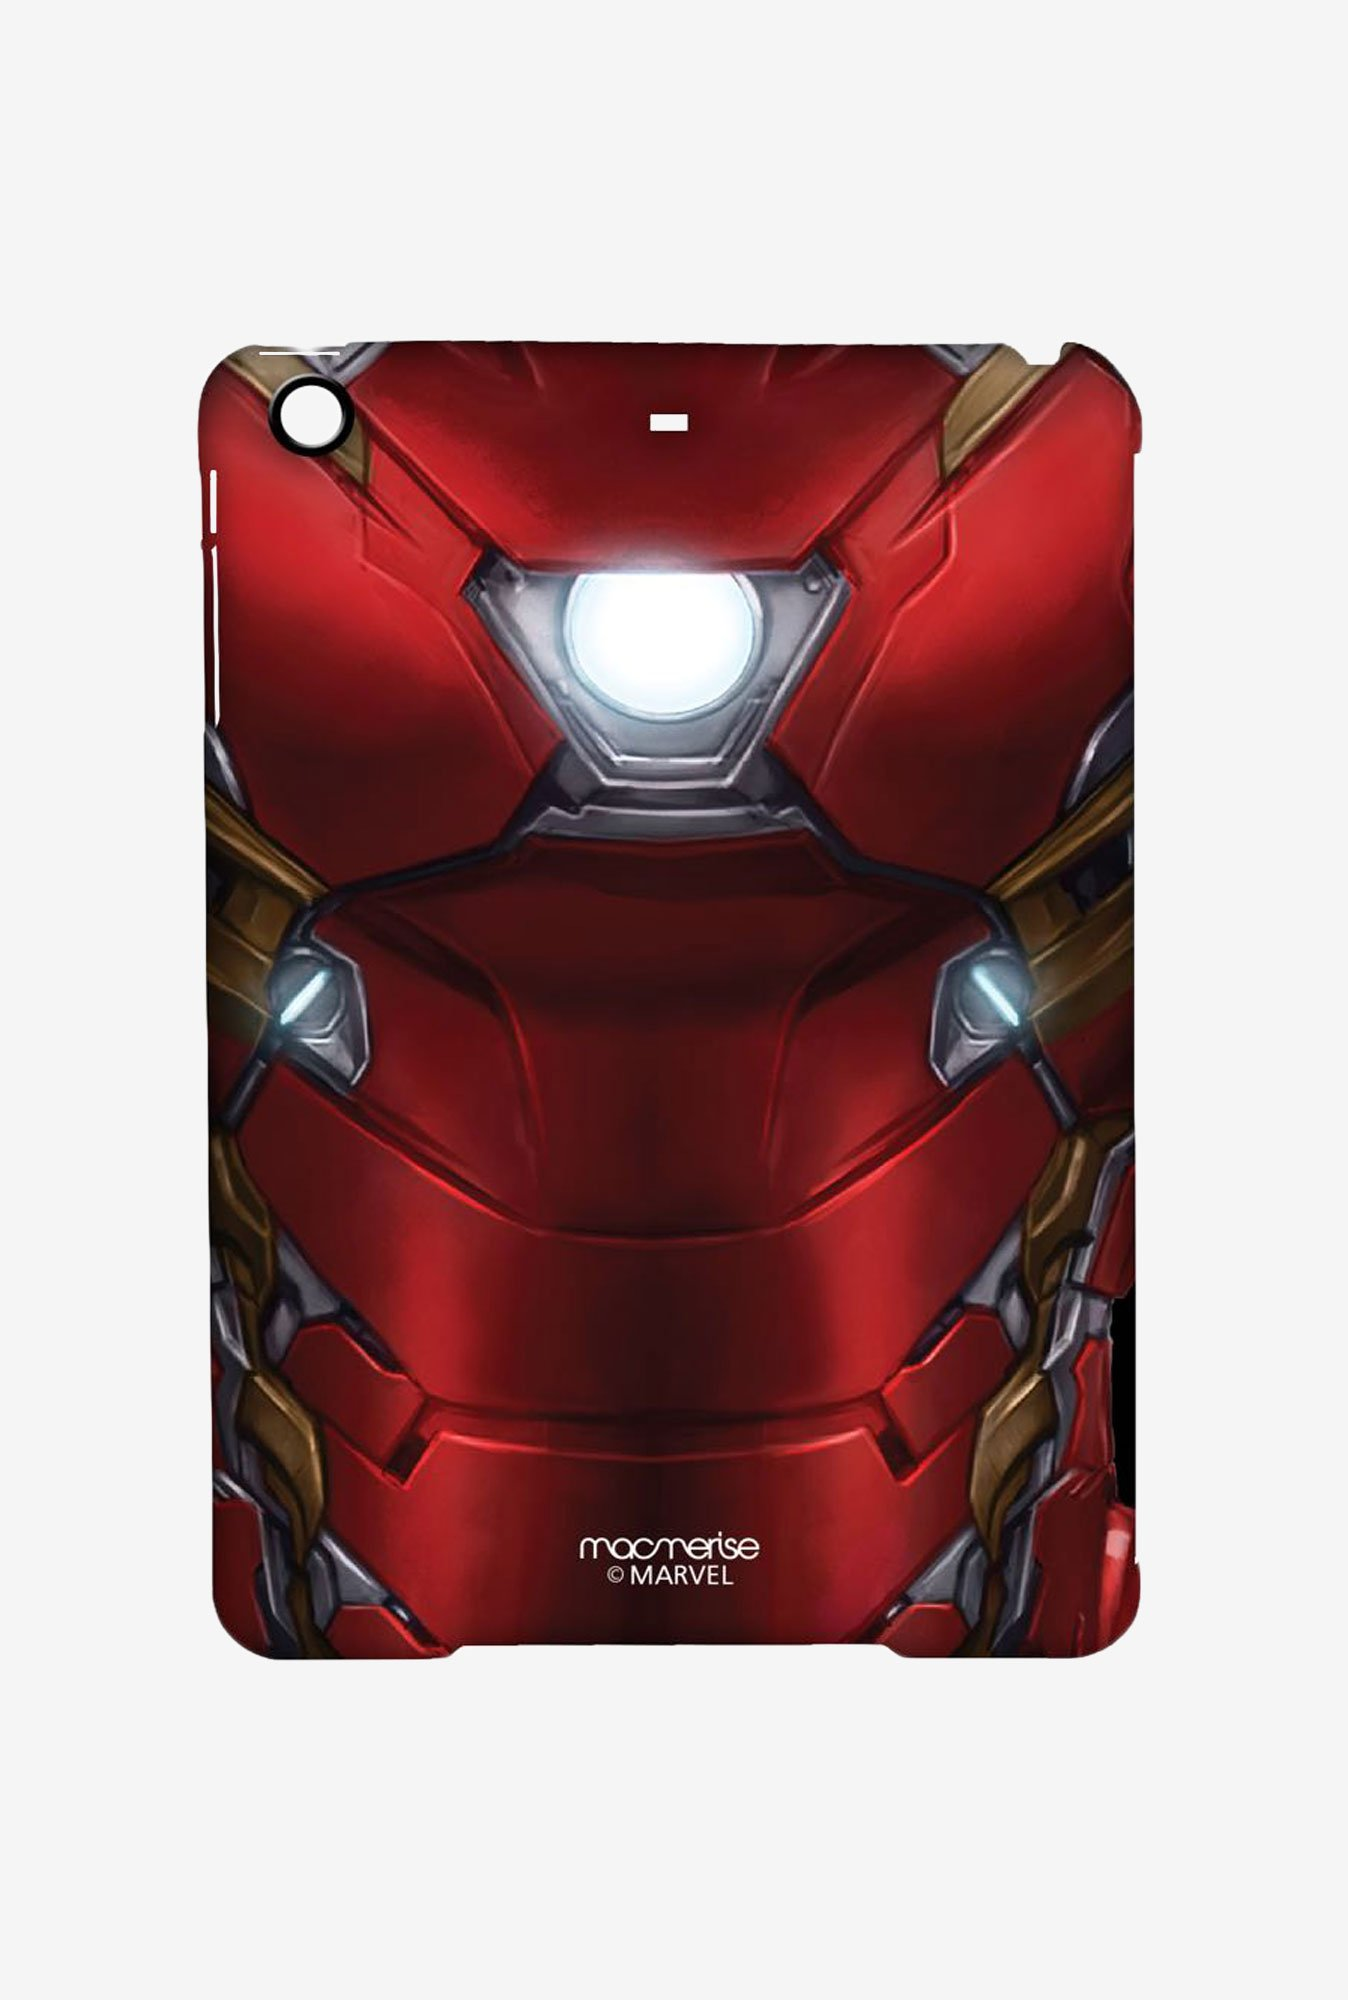 Macmerise Suit up Ironman Pro Case for iPad Mini 1/2/3